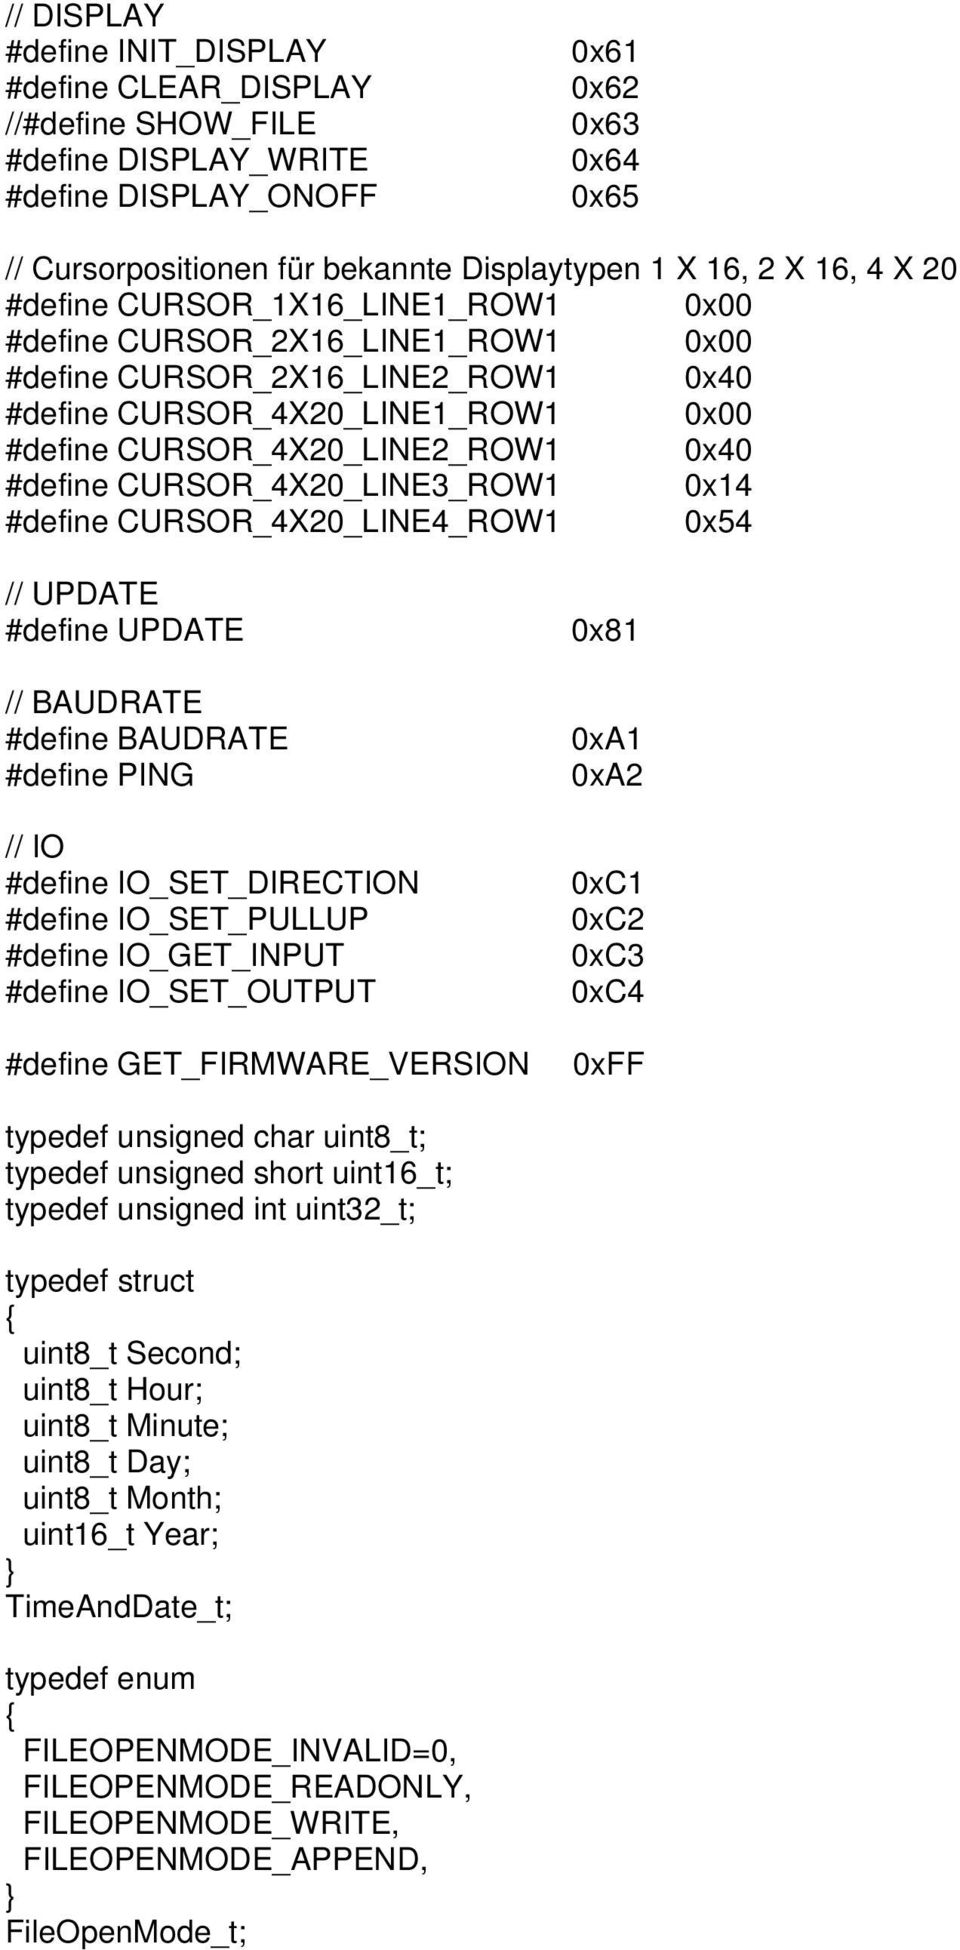 #define CURSOR_4X20_LINE3_ROW1 0x14 #define CURSOR_4X20_LINE4_ROW1 0x54 // UPDATE #define UPDATE // BAUDRATE #define BAUDRATE #define PING // IO #define IO_SET_DIRECTION #define IO_SET_PULLUP #define